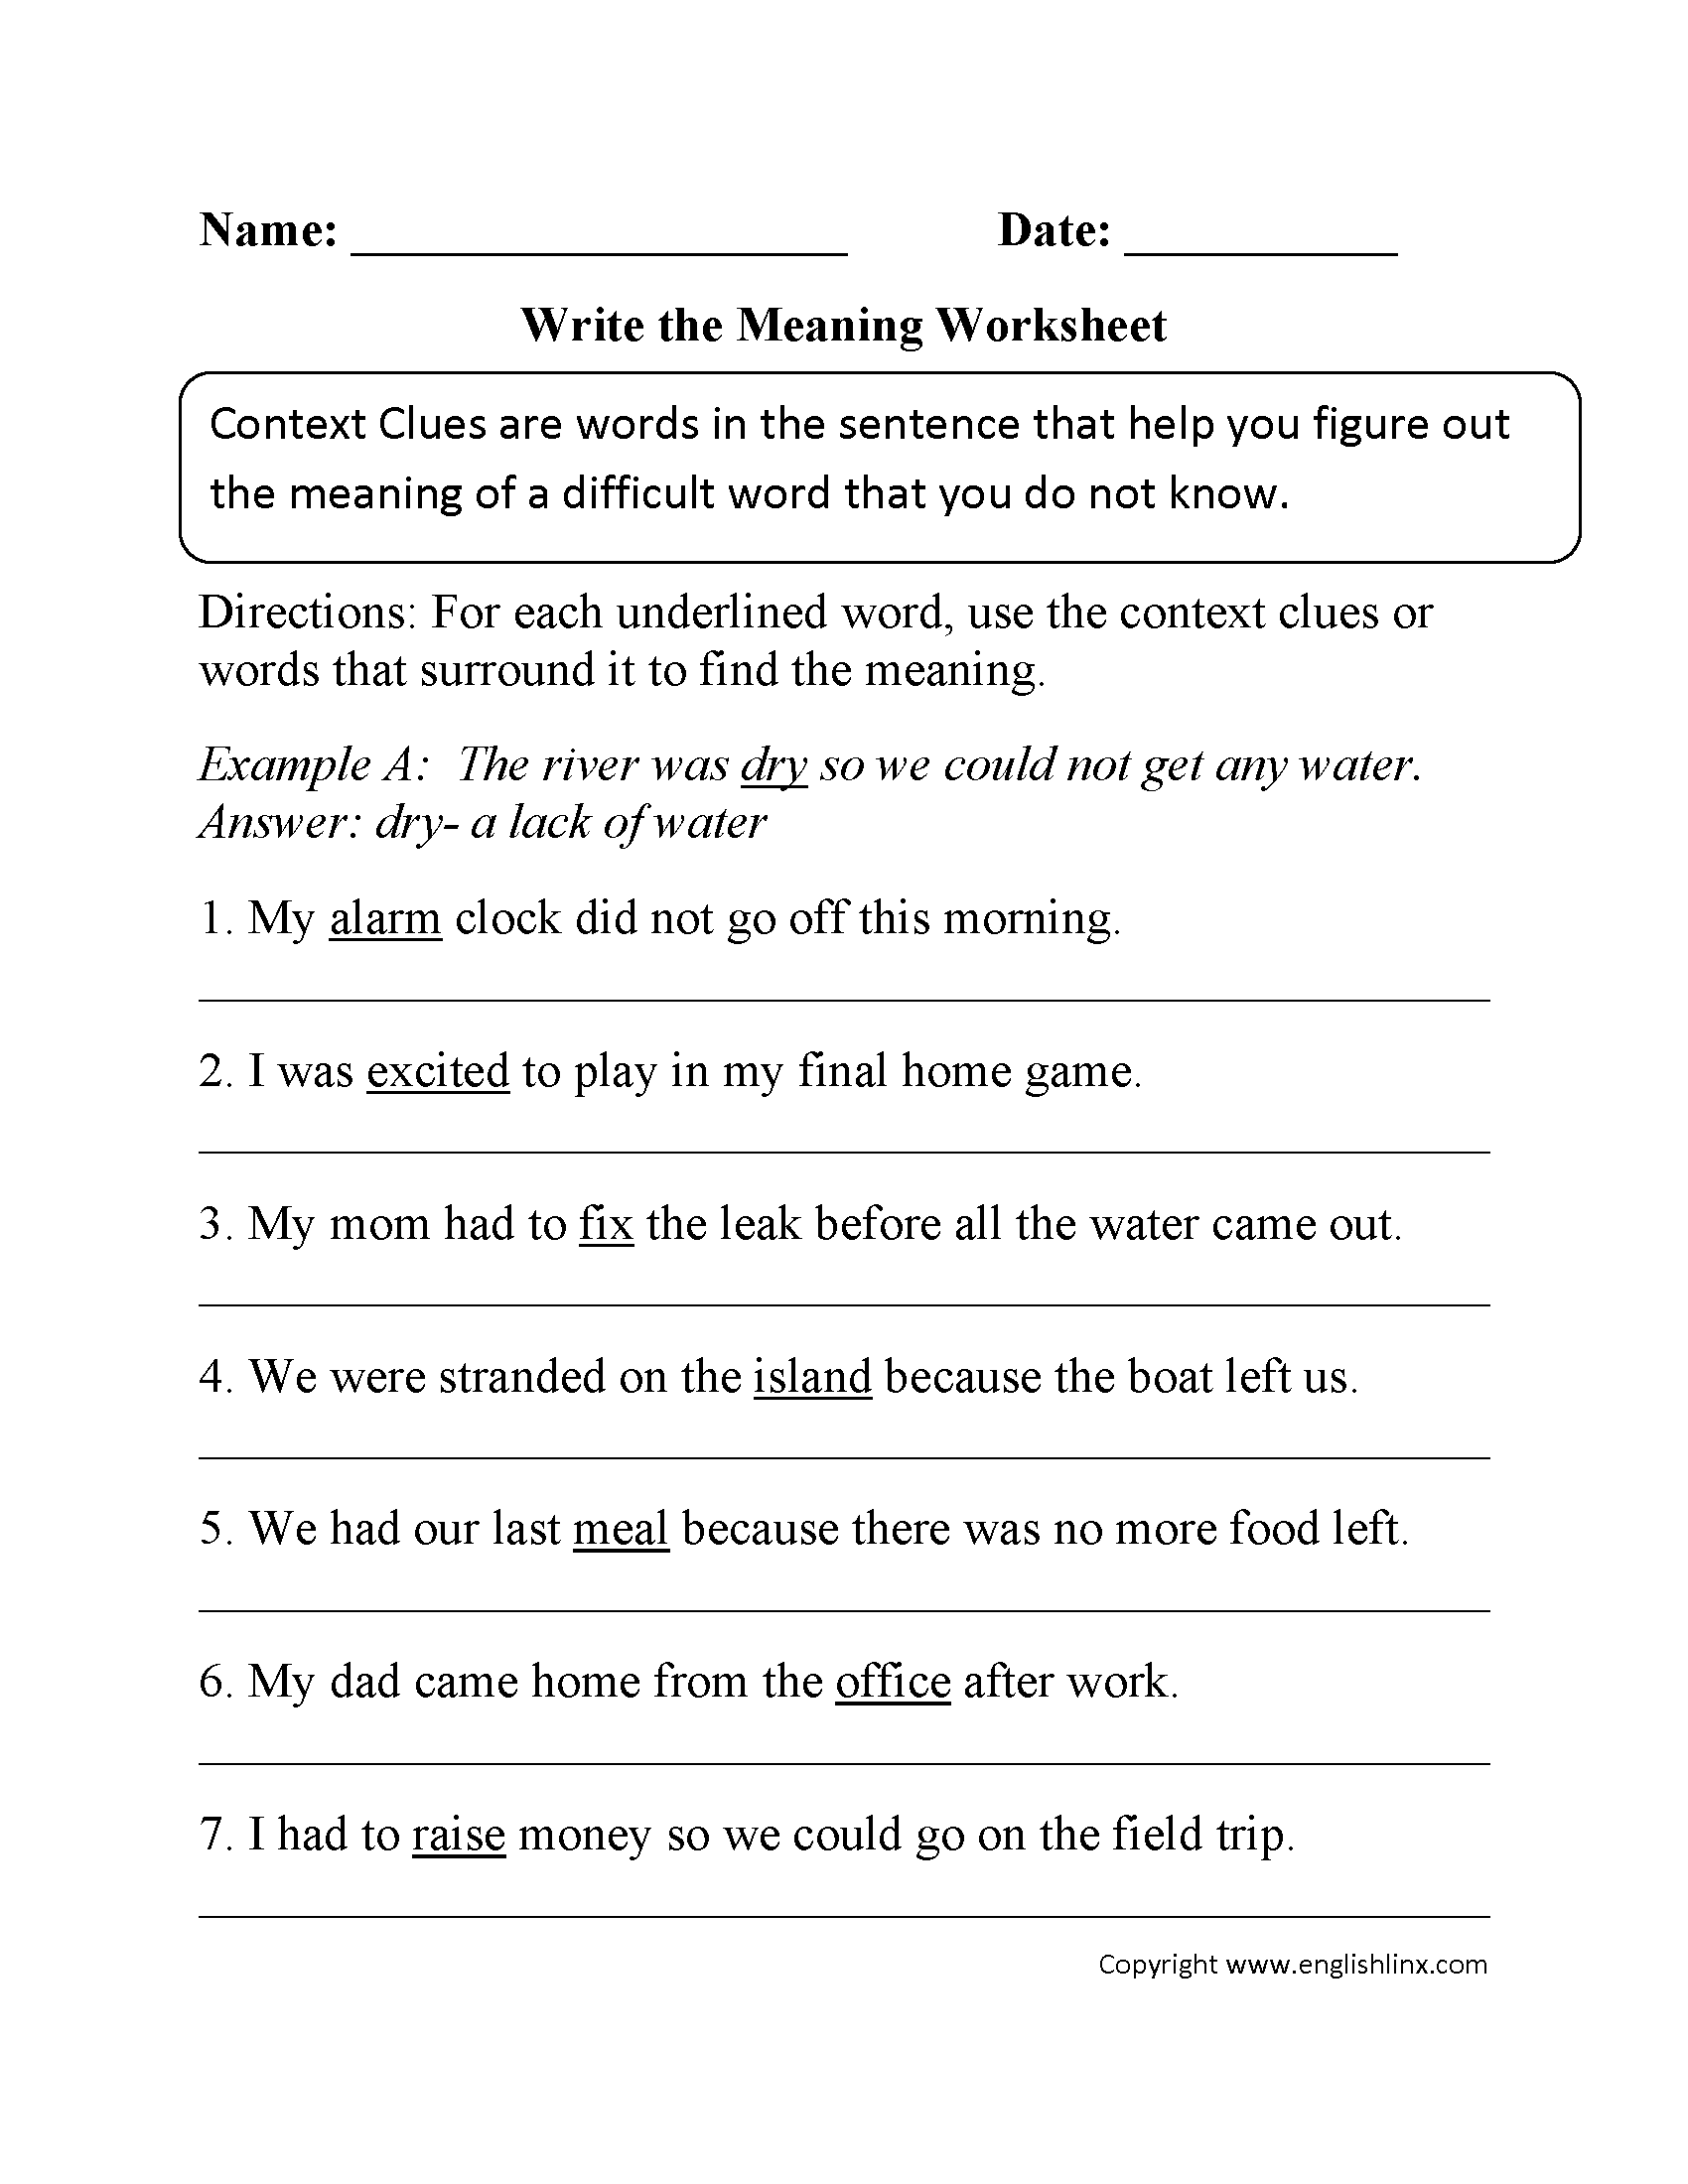 Worksheets Context Clues Worksheets 2nd Grade reading worksheets context clues multiple choice 8th grade learning worksheet 6 free with answers antonym multiple